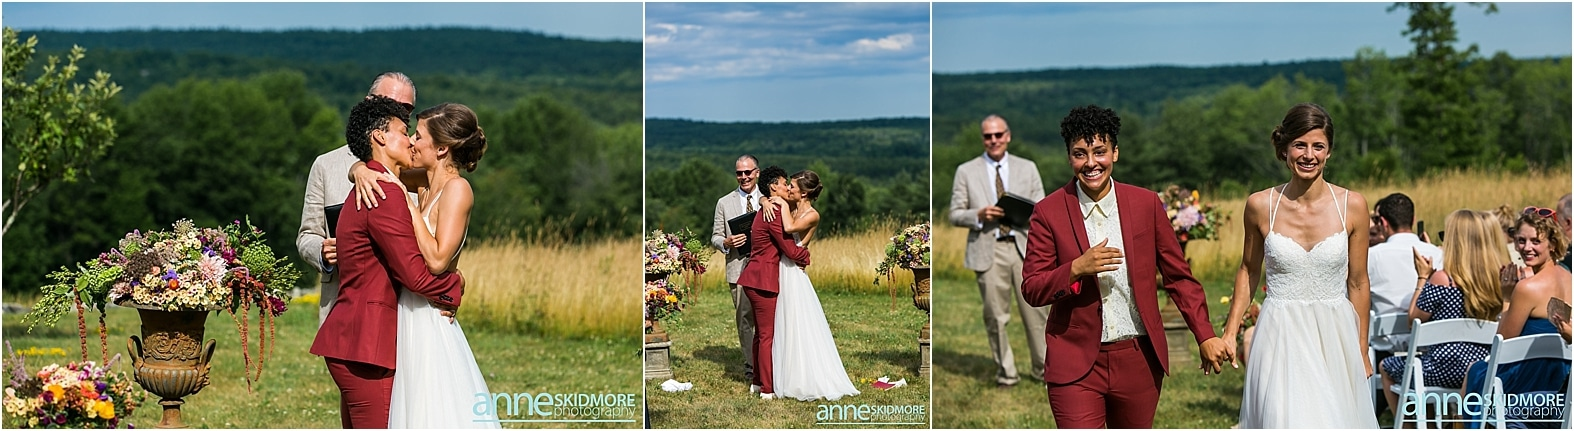 Maine_Barn_Wedding_0036